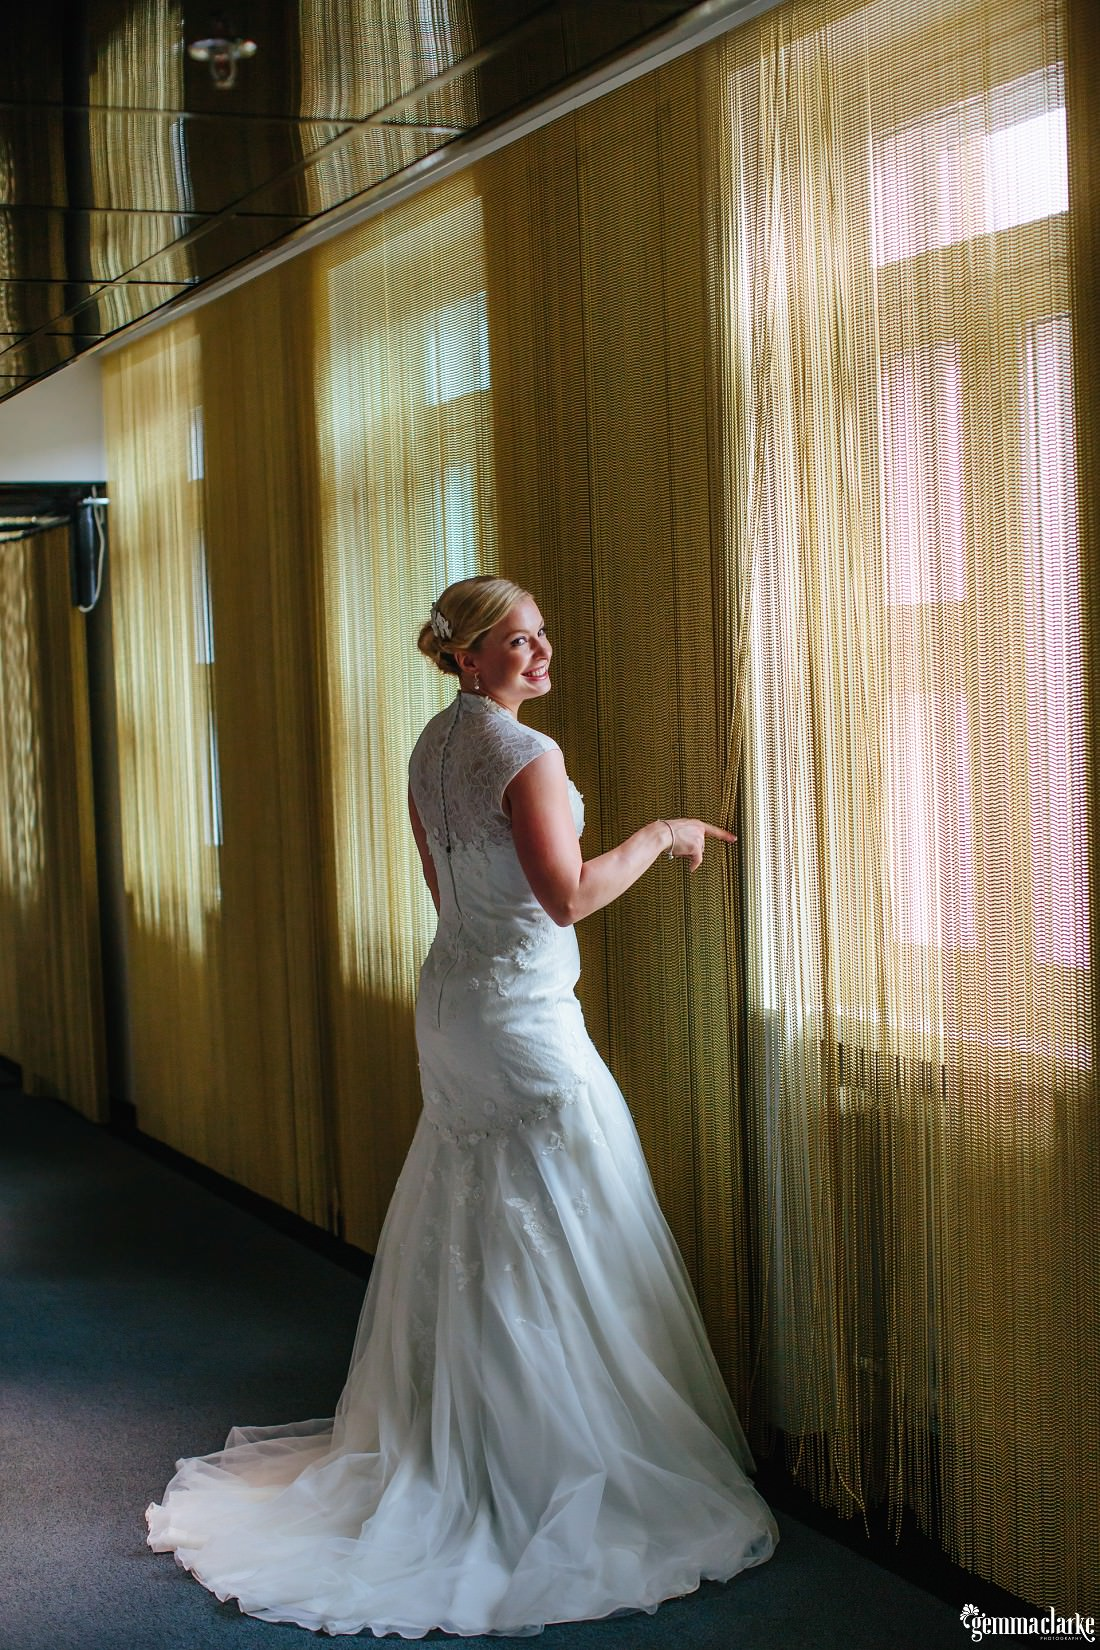 A smiling bride standing in front of a beaded curtain